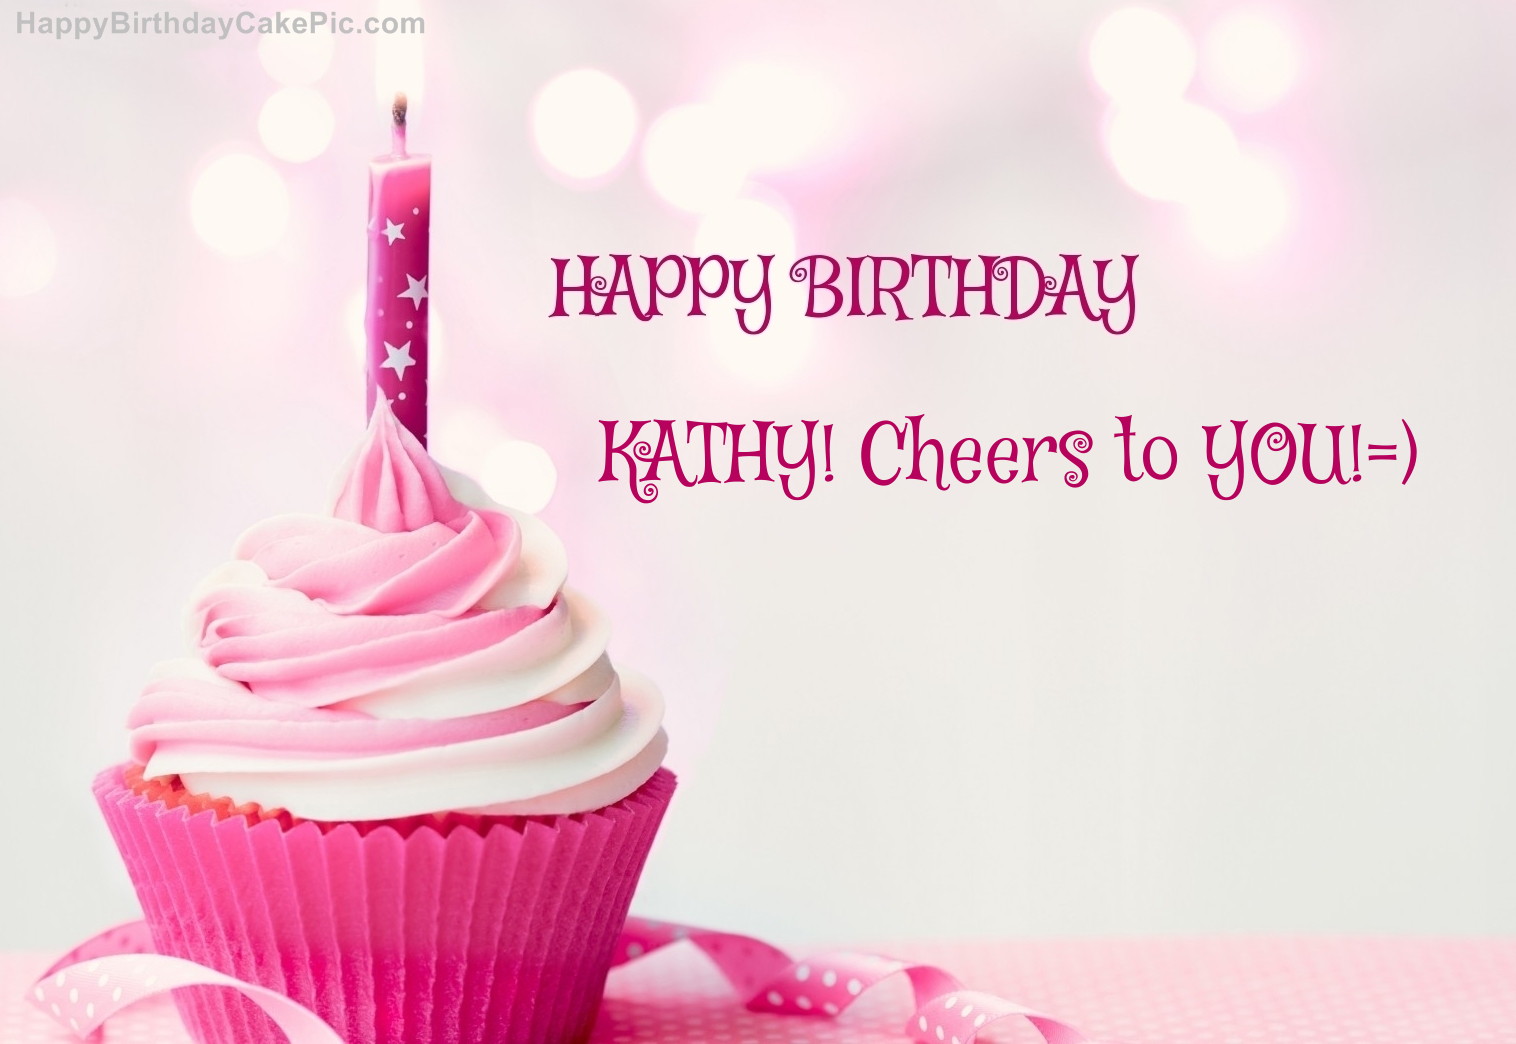 Happy Birthday Cupcake Candle Pink Cake For Kathy Cheers